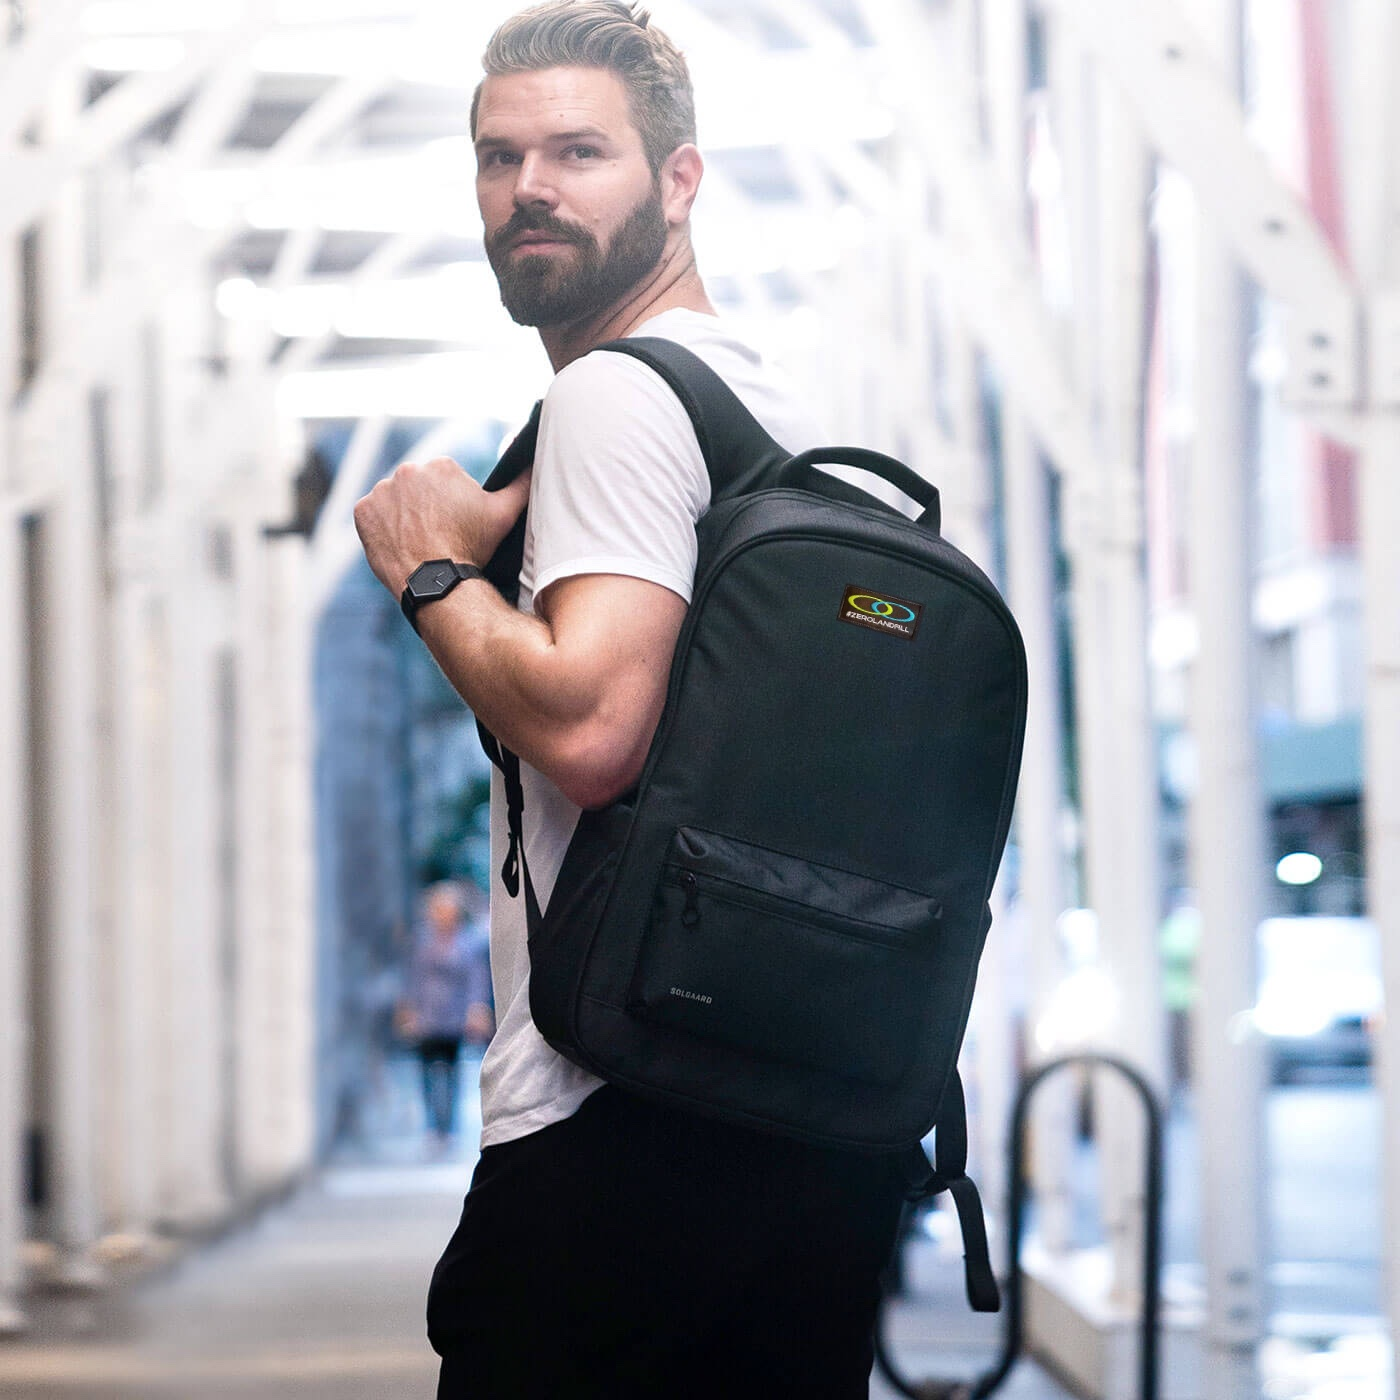 Daypack made from recycled ocean plastic